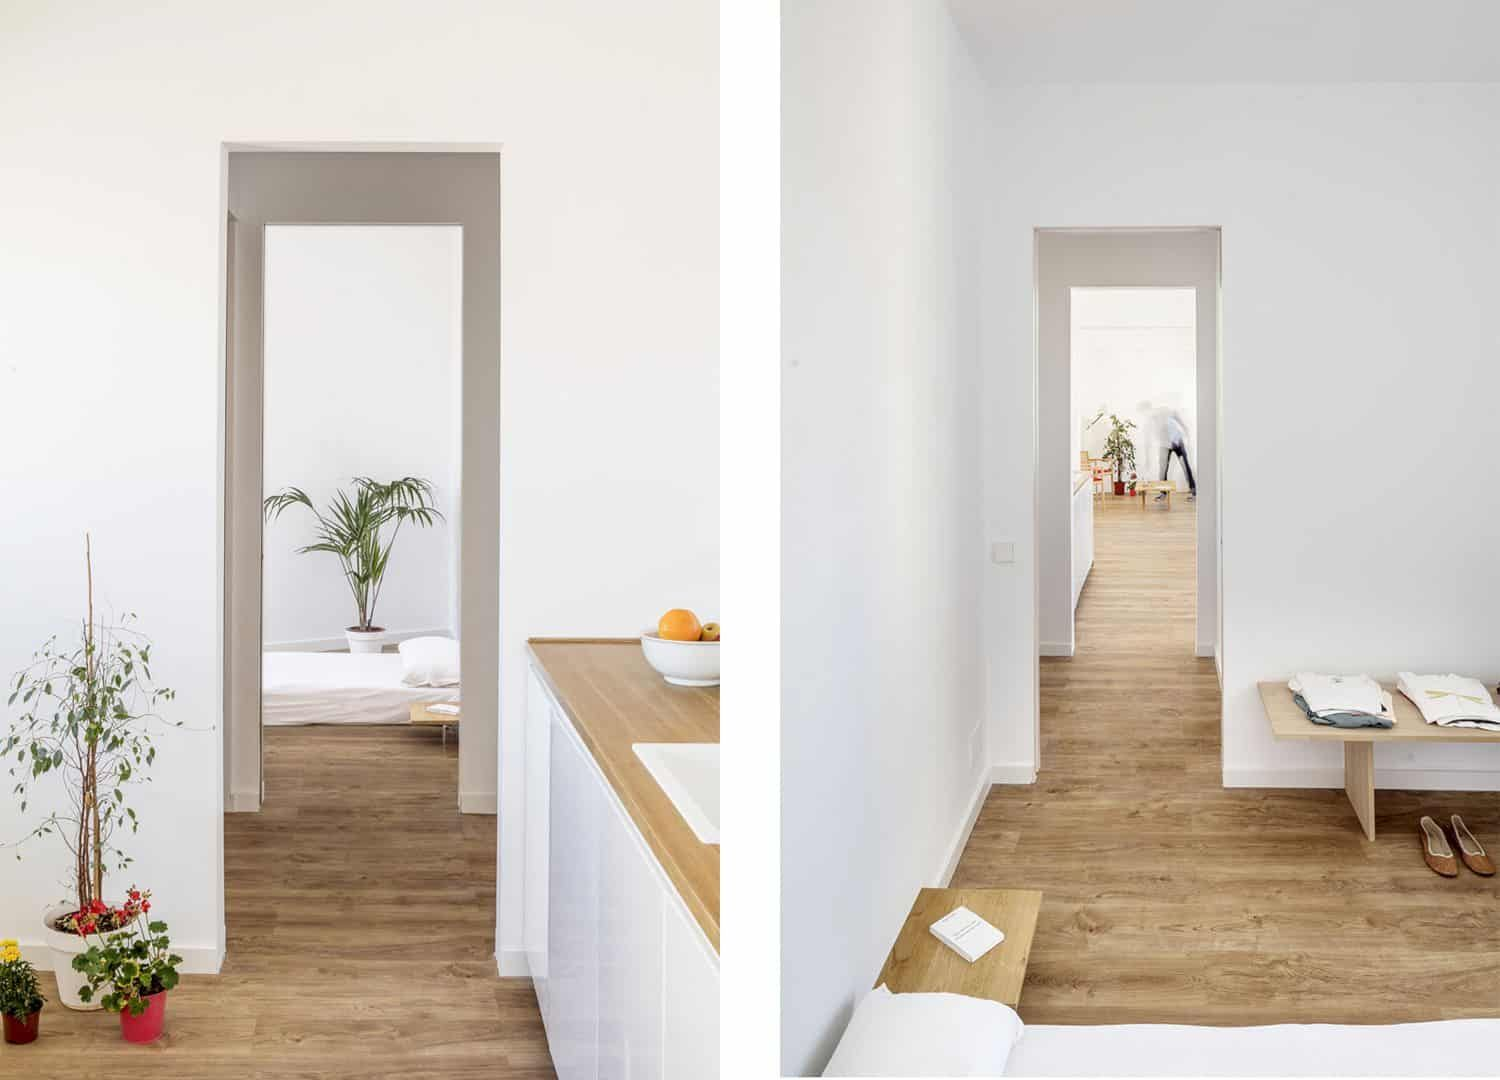 Montjuic Apartment An Apartment Renovation With A New Domestic Atmosphere And Frame Like Partitions Apartment Renovation Apartment Renovations